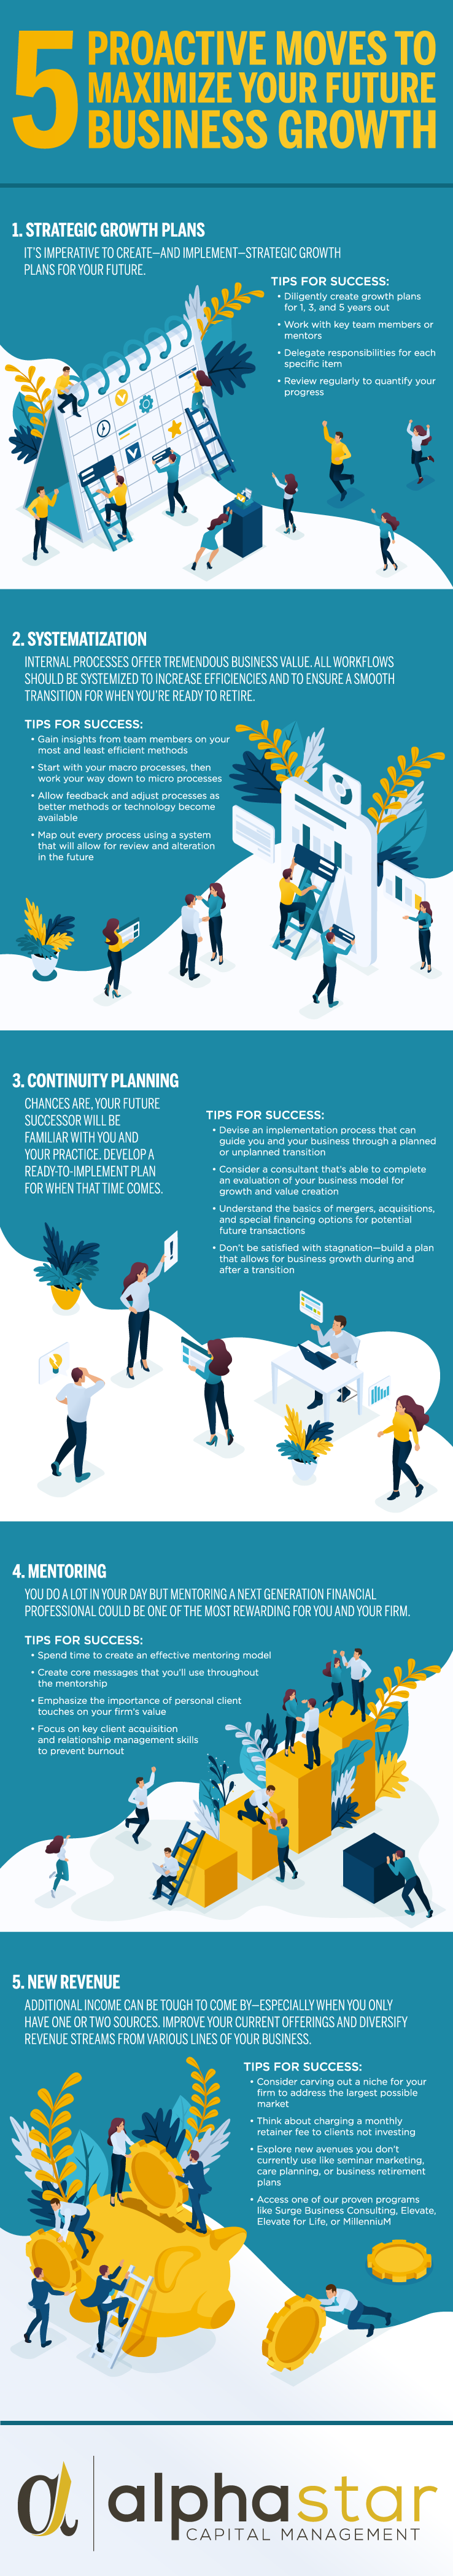 5 Ways to Maximize Your Business Growth Infographic